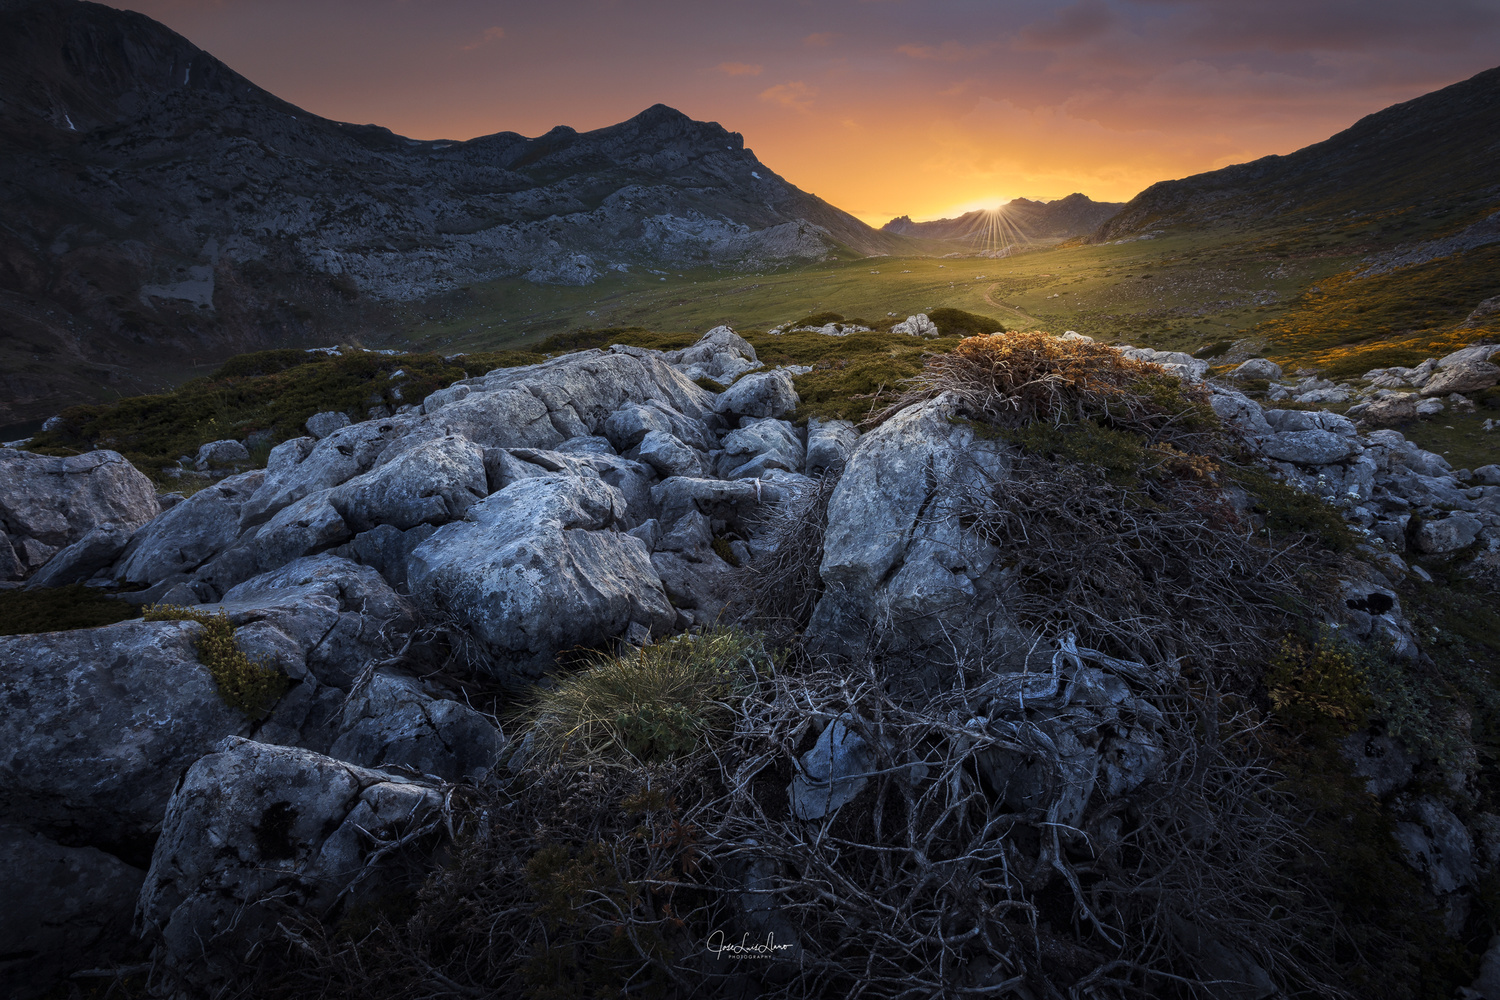 Sunset over the peaks by Jose Luis Llano